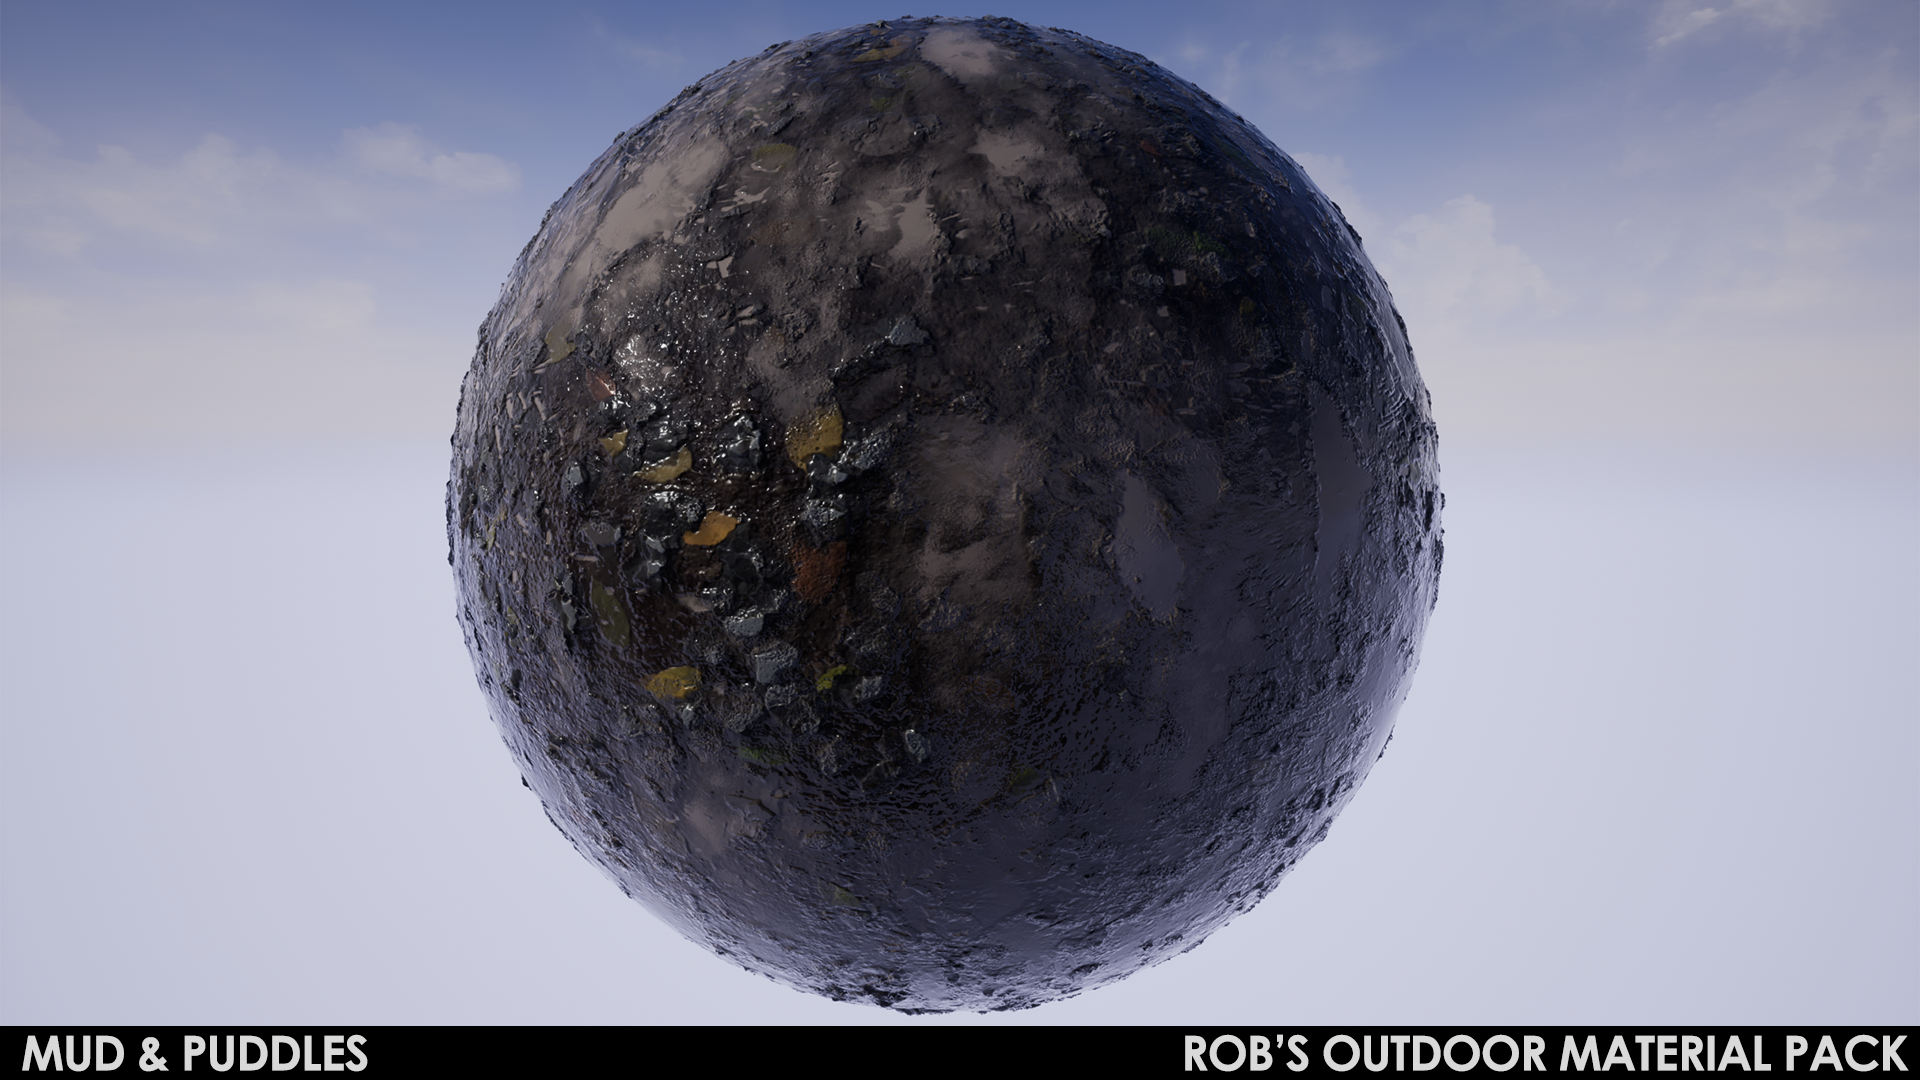 Rob's Outdoor Material Pack by Robert Ritchie in Materials - UE4